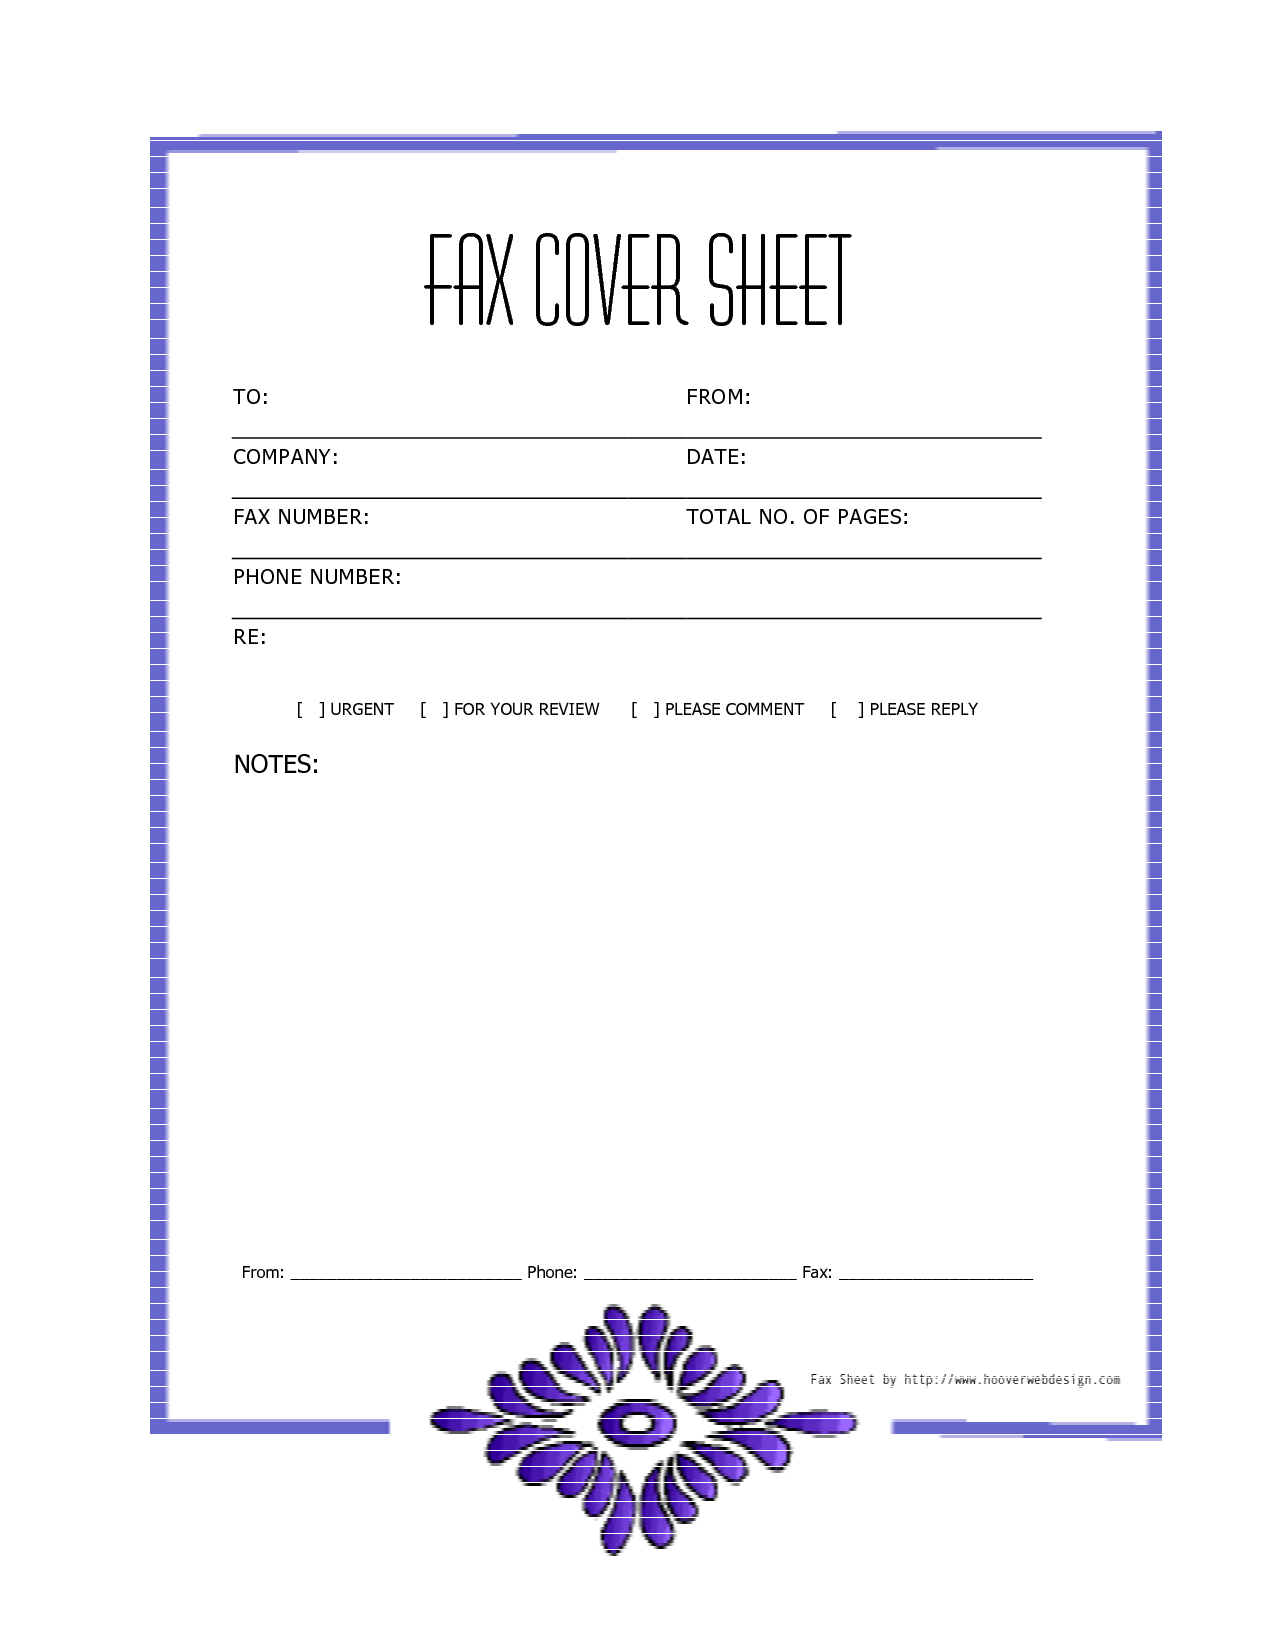 best images about. Clipart fax cover sheet